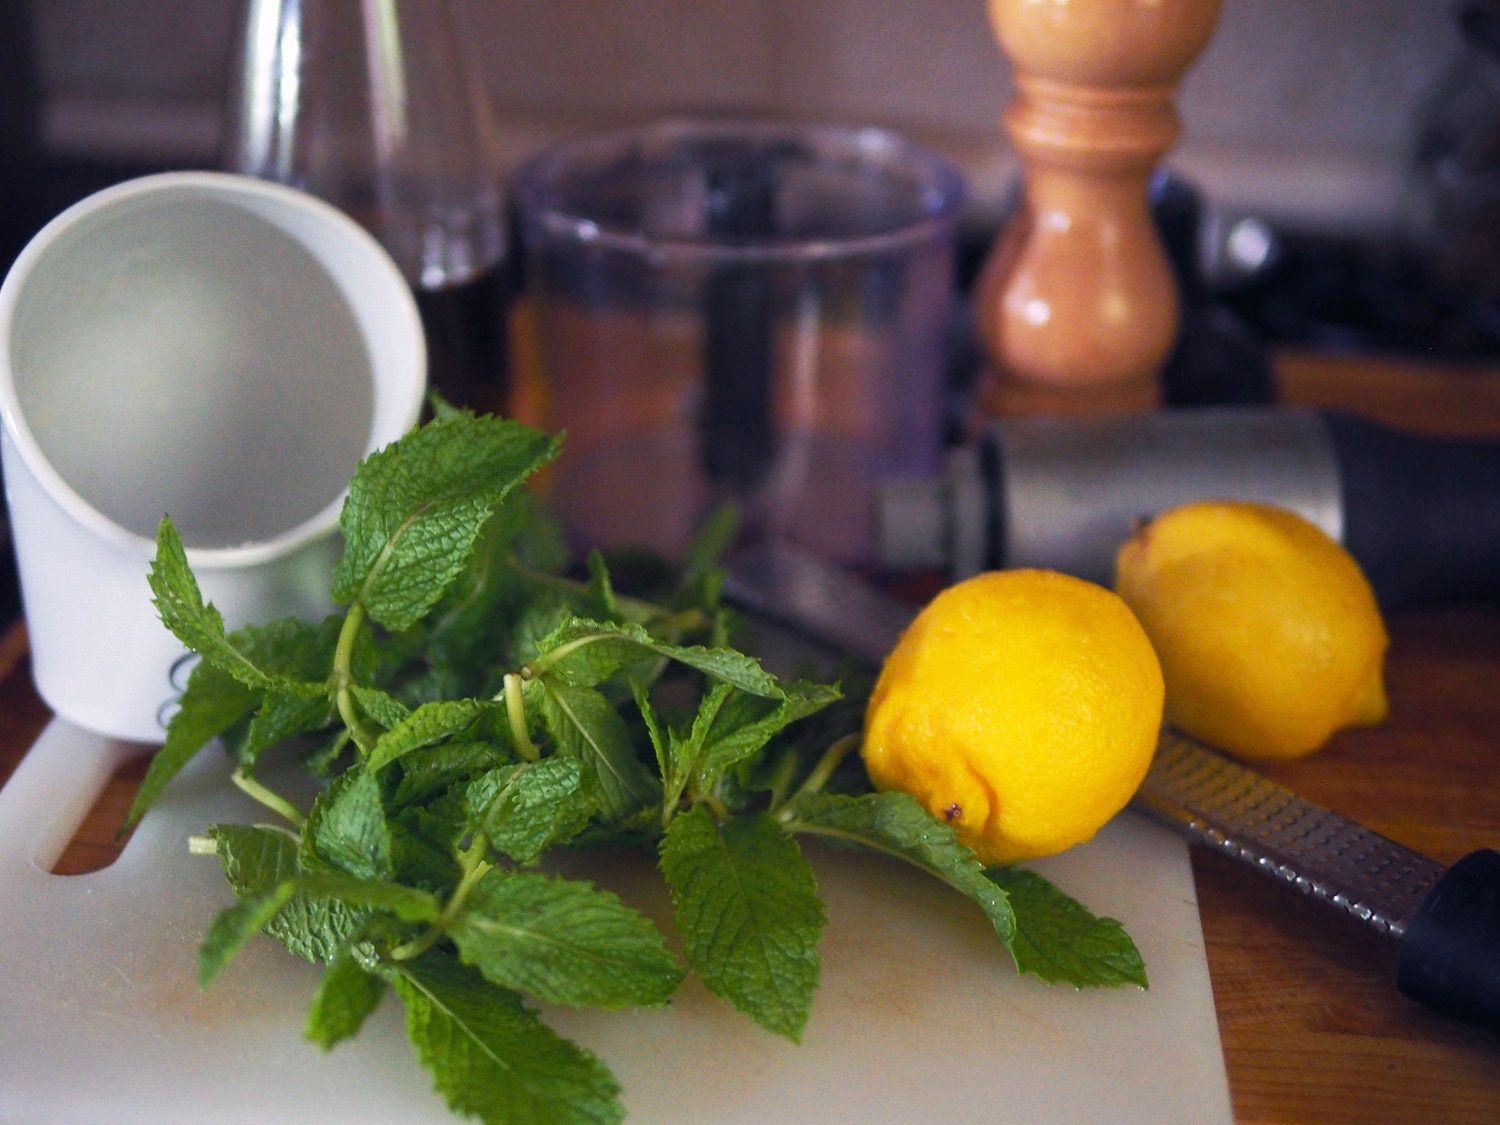 Cool, crisp mint and fresh lemons